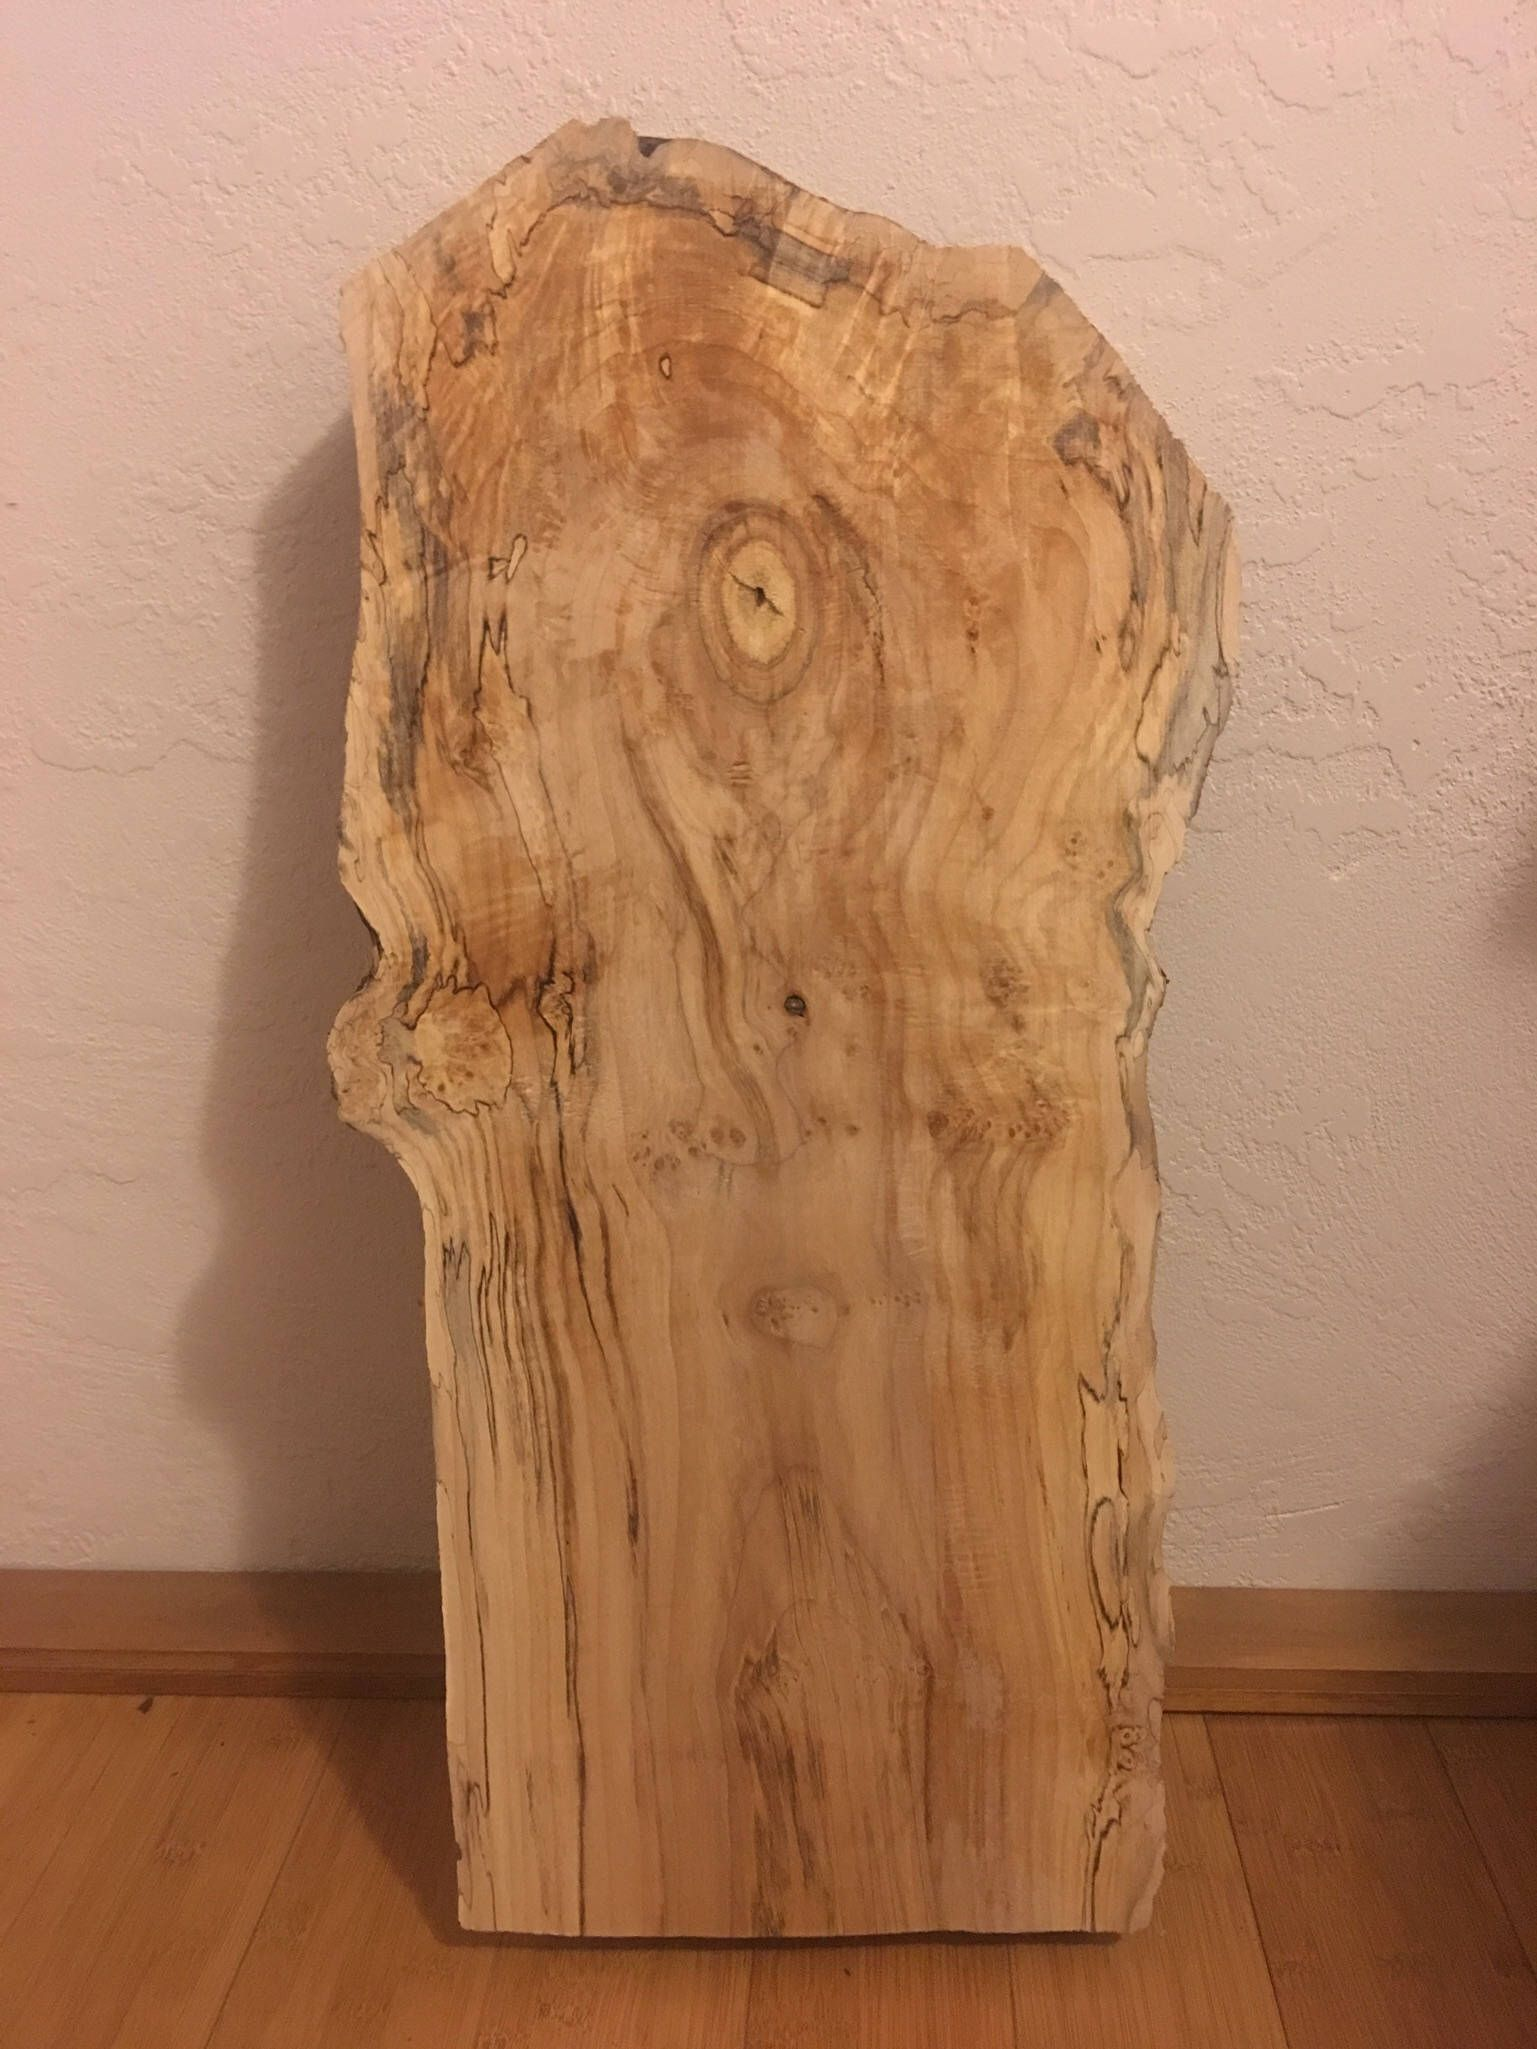 Live Edge Spalted Maple Wood Slab Dimensions 26 1 4 Length 12 6 16 Width 2 Thick This Listing Is For One Live Edge U Wood Slab Maple Wood Spalted Maple